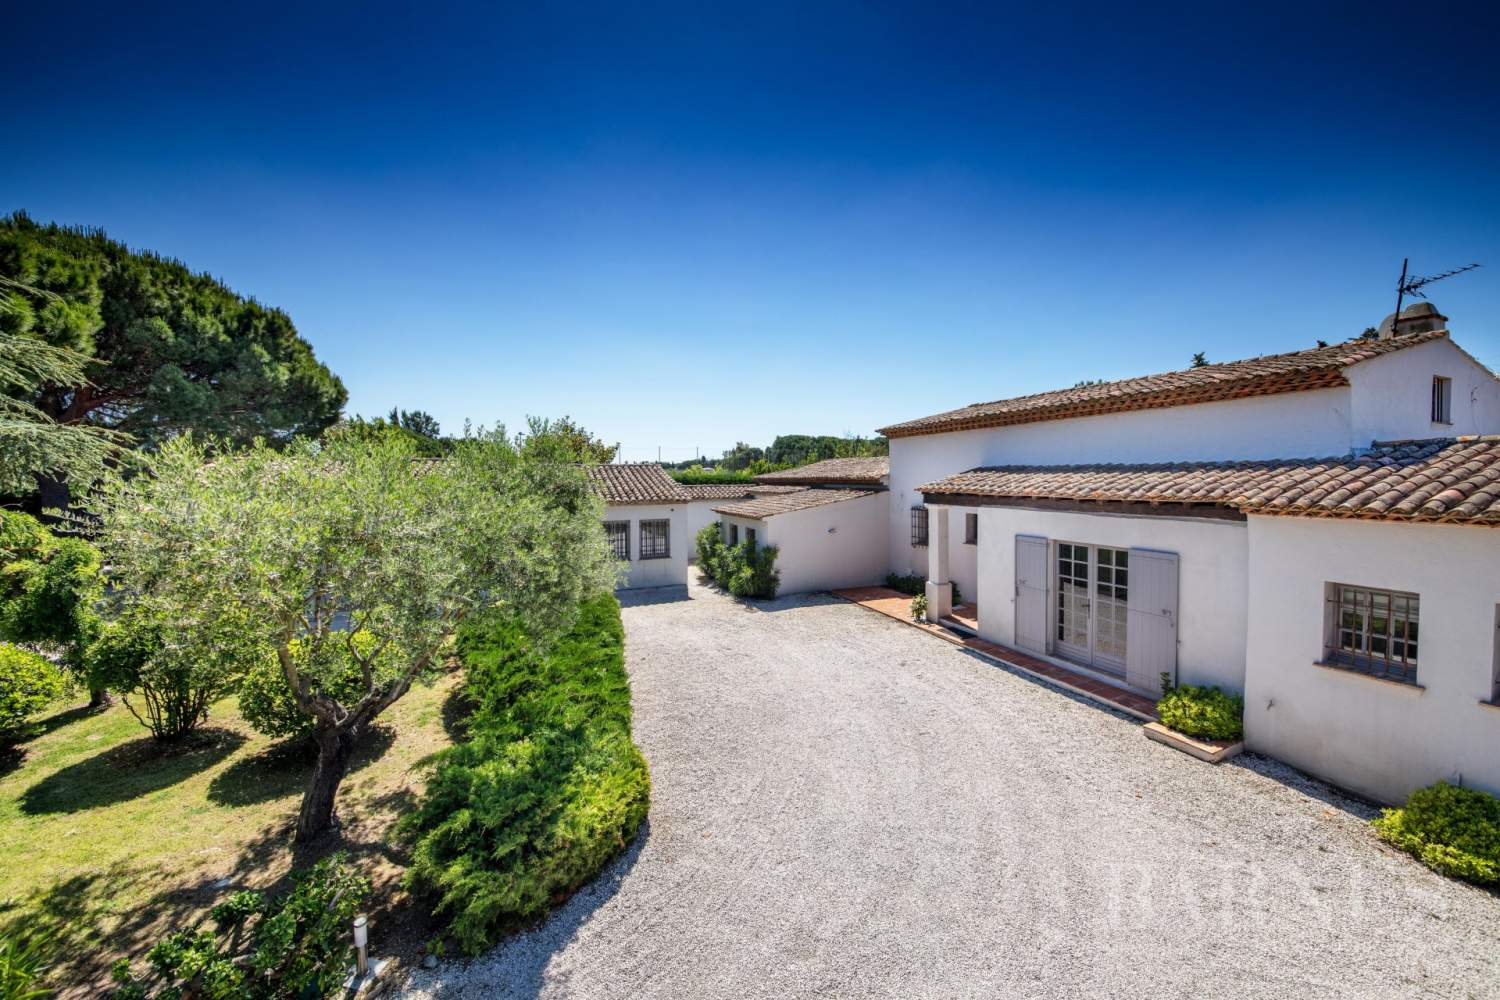 SAINT-TROPEZ - Les Salins / Canebiers - 7 bedrooms - Pool picture 4